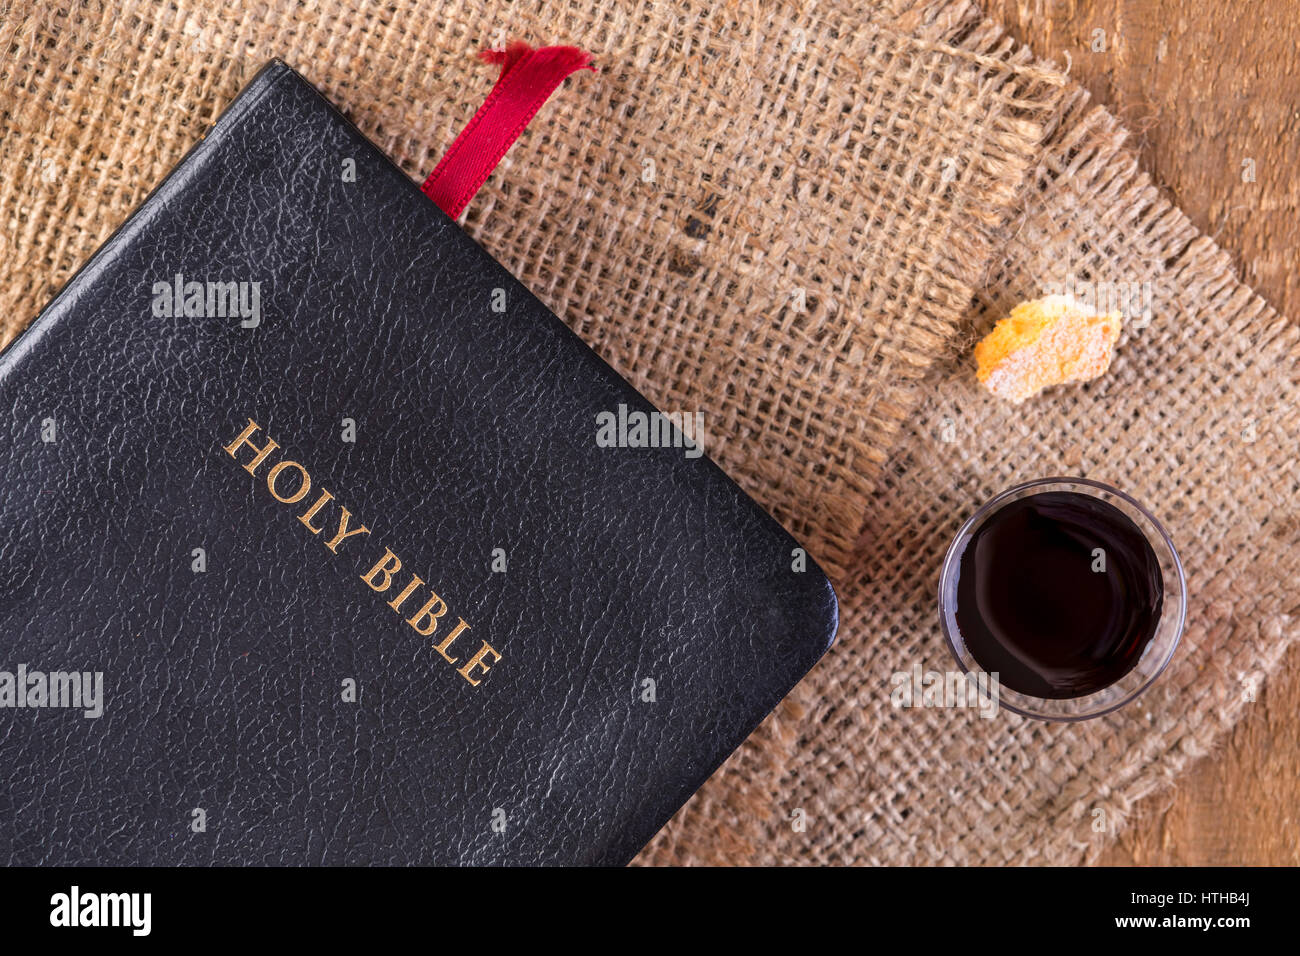 Taking Communion. Cup of glass with red wine, bread and Holy Bible on wooden table close-up - Stock Image